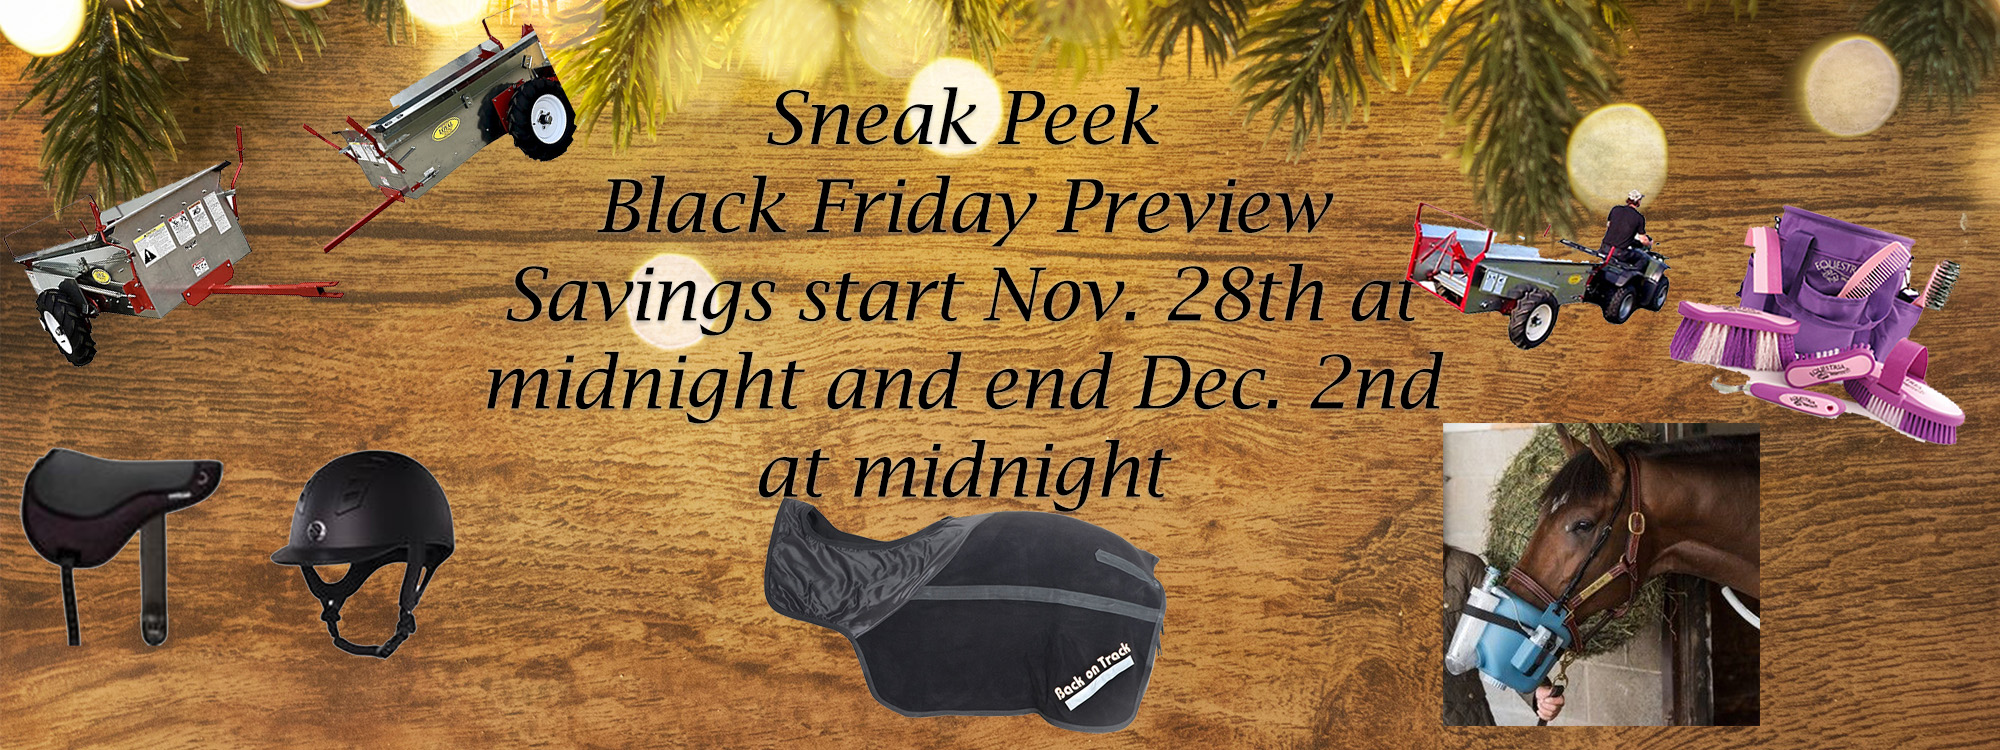 Black Friday savings from Nov. 28th to Dec 2nd